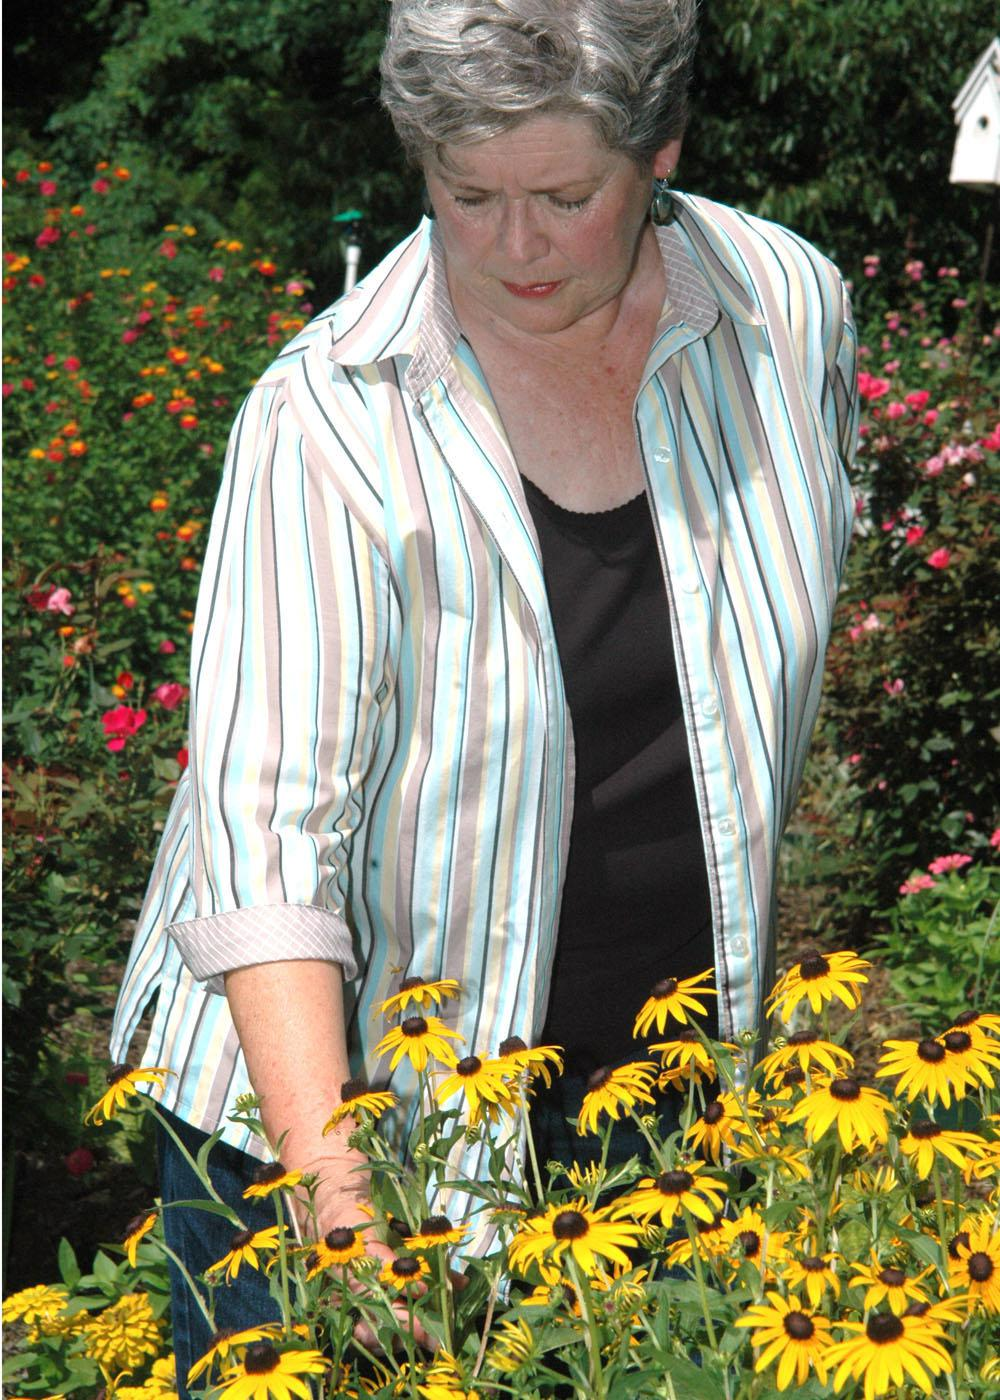 Rankin County Master Gardeners president Nellie Axley of Brandon admires the refurbished flower bed the group created for the local Extension office landscape.